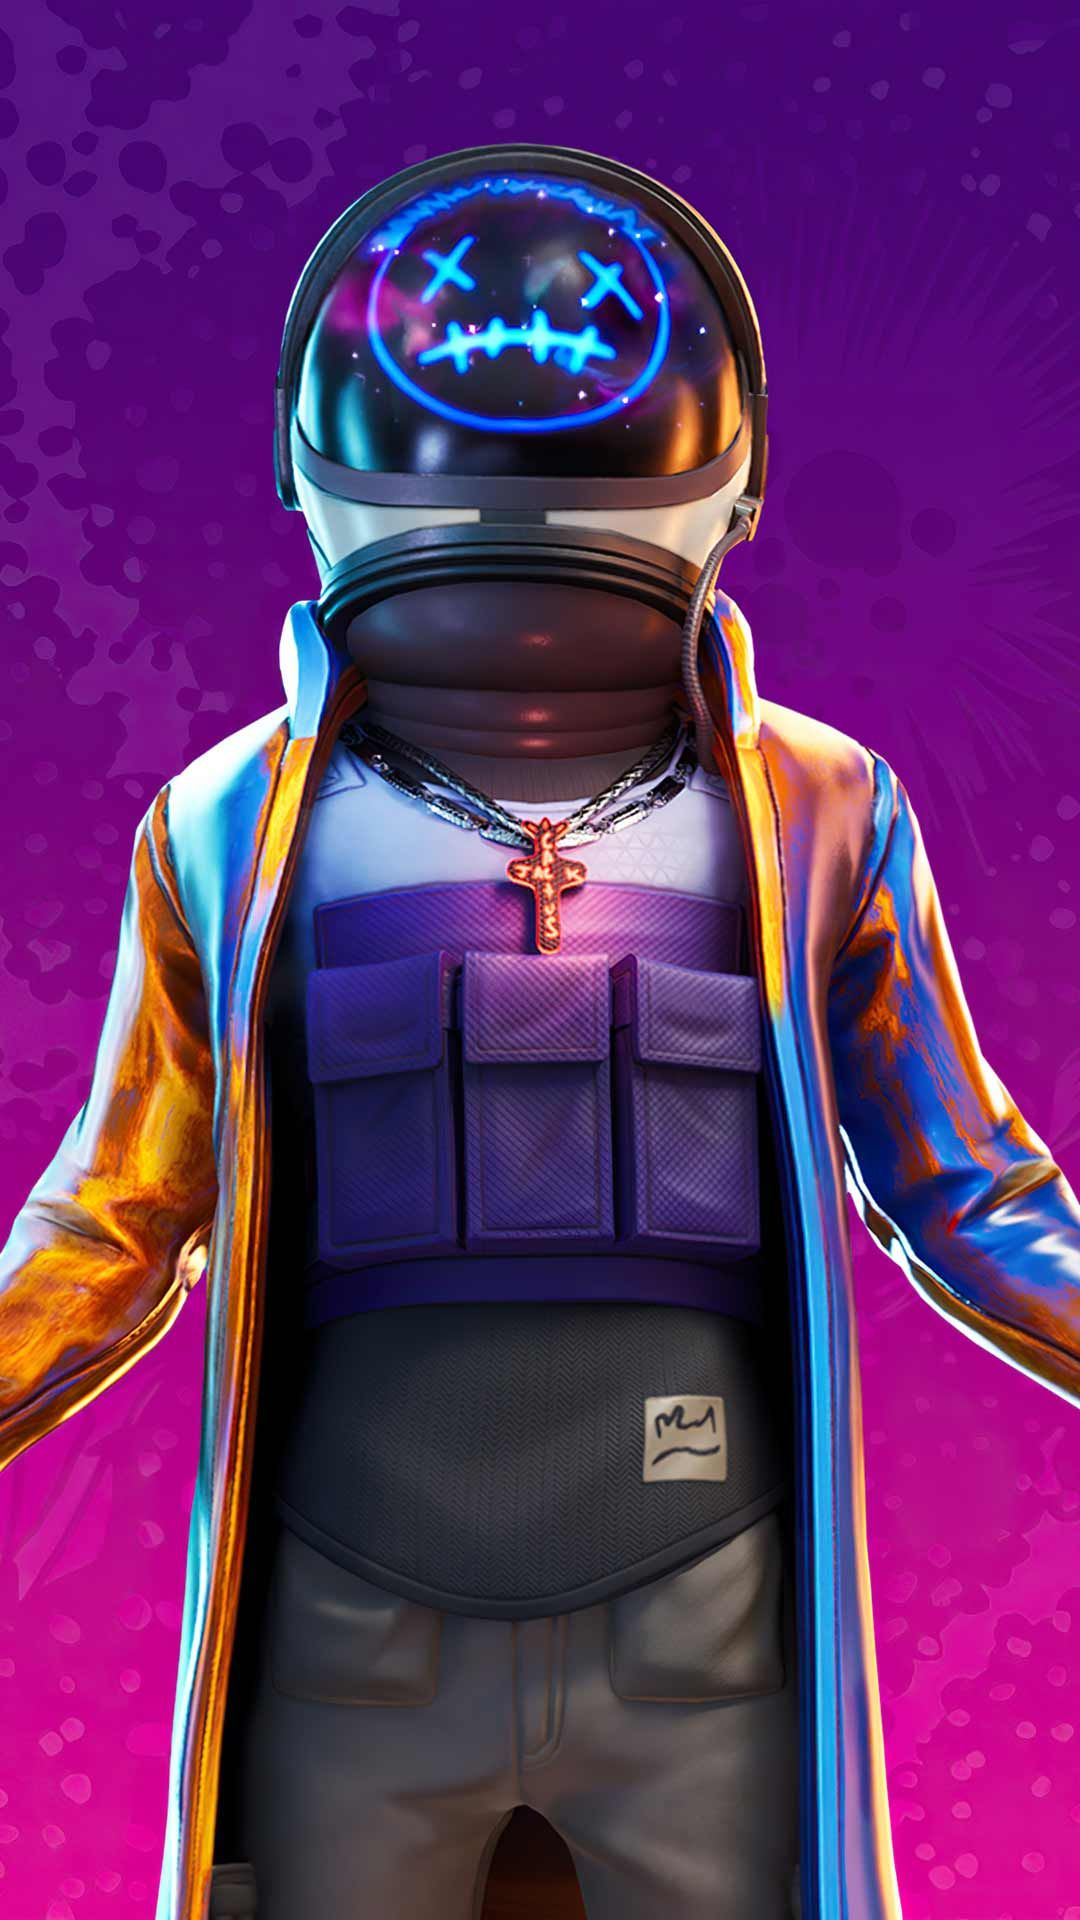 Astro Jack Fortnite Skin Wallpaper Hd Phone Backgrounds Art Poster For Iphone Android Home Scree In 2020 Hd Phone Backgrounds Cellphone Background Hd Wallpaper Android